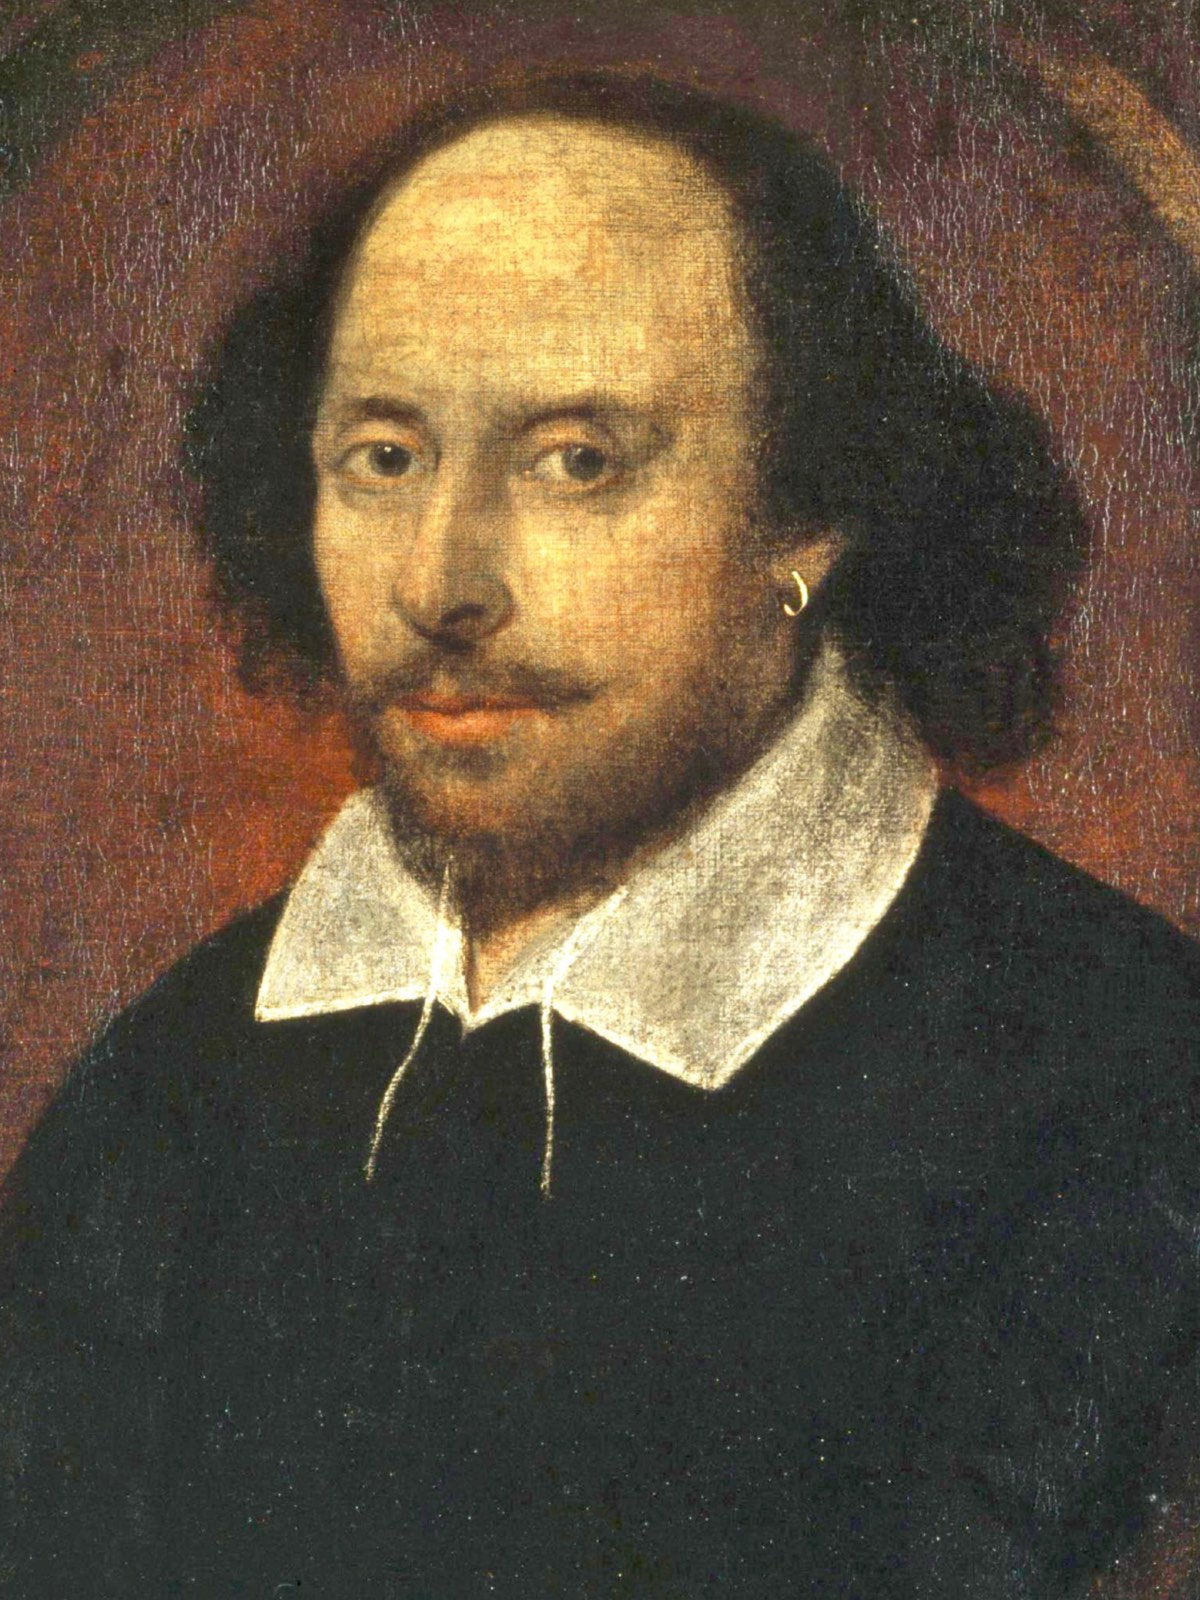 shakespeare conspiracy the fraud of avon the unredacted portrait of shakespeare by unknown artist